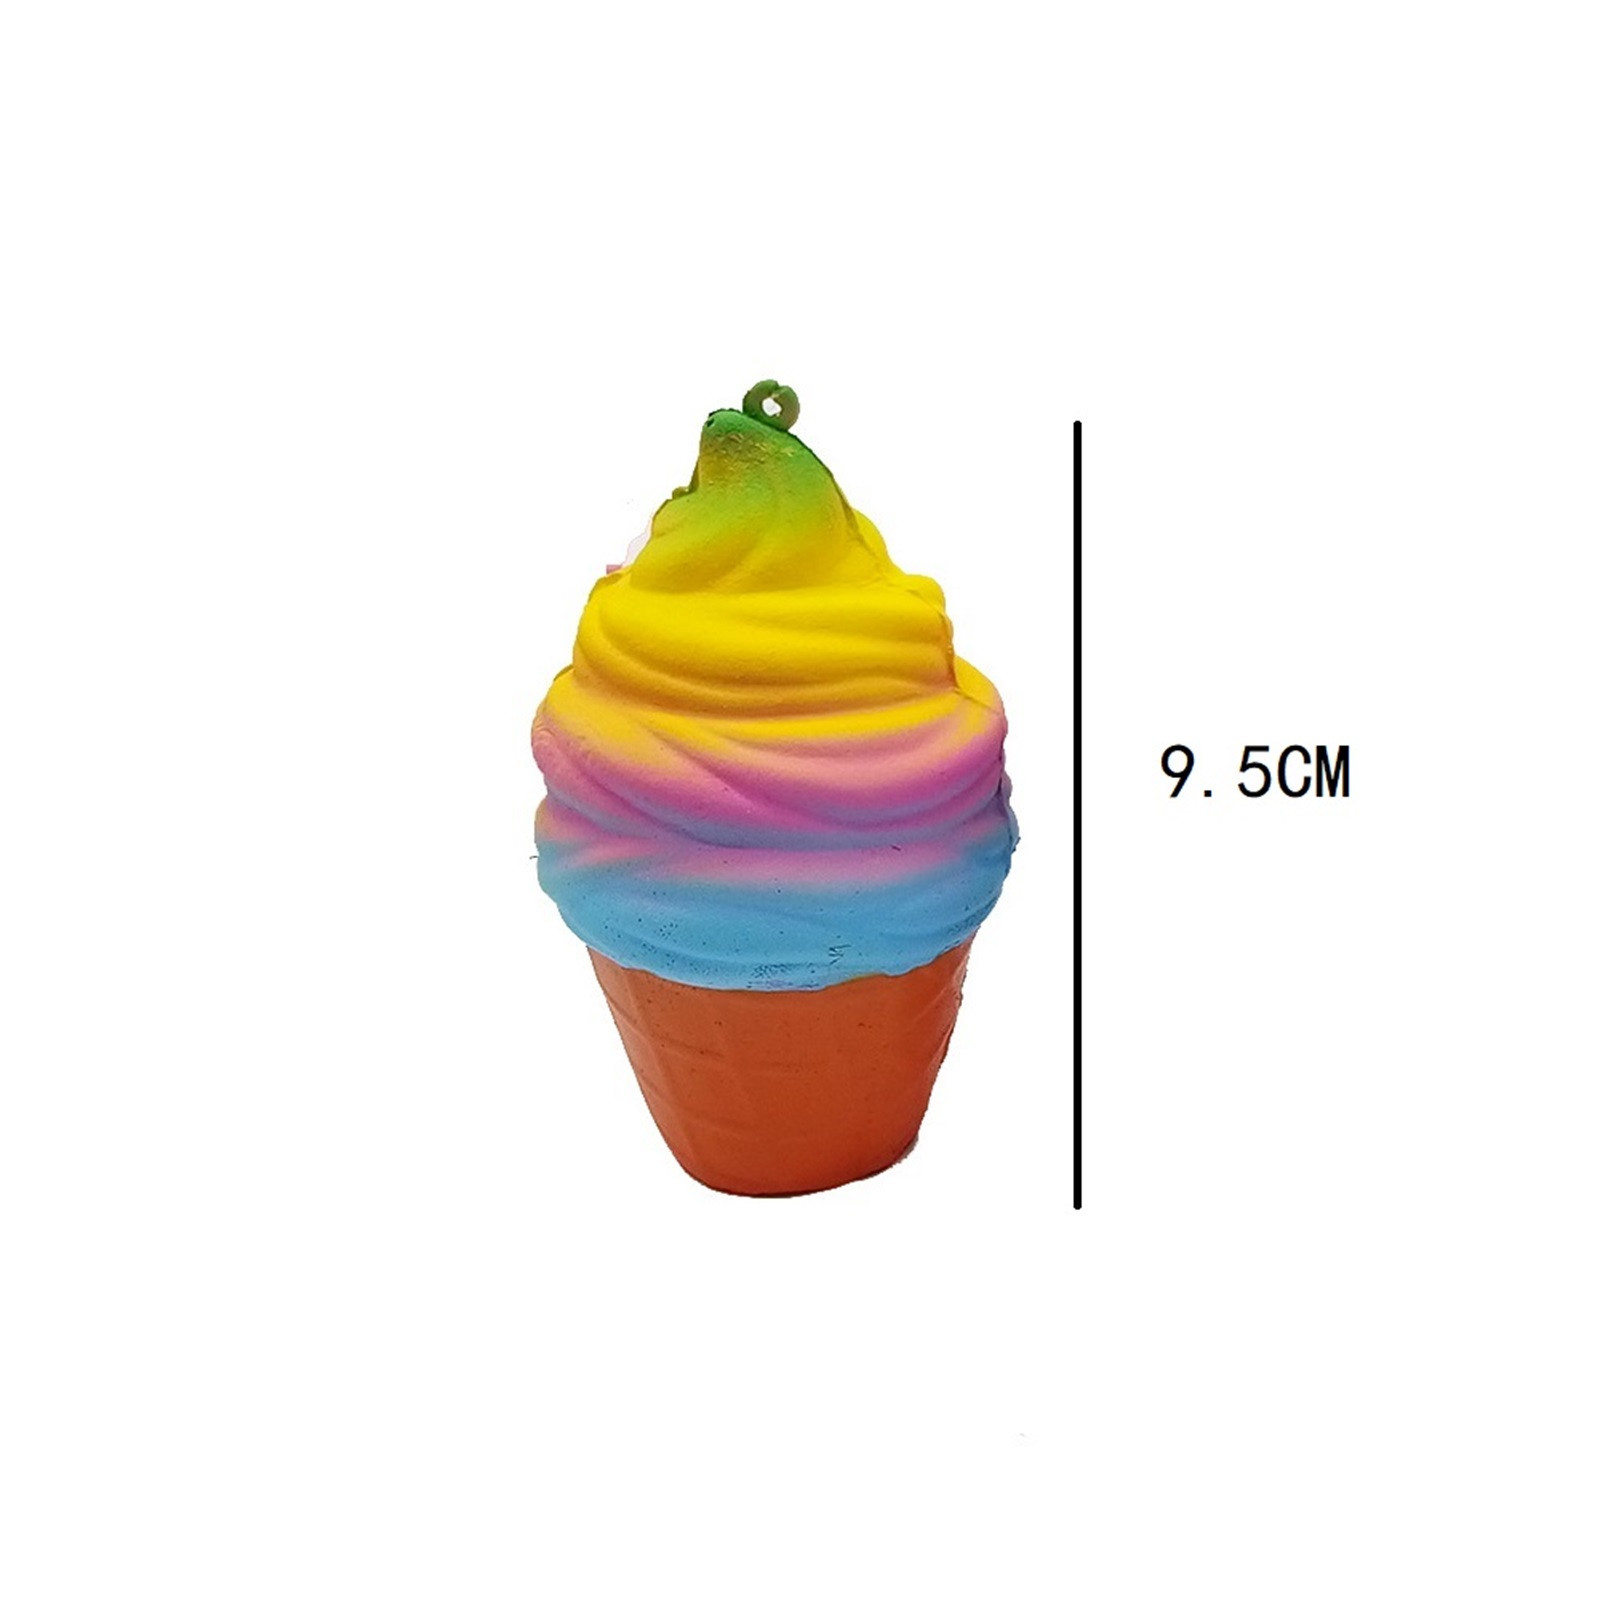 Scented Rainbow Fudge Release Stress Toys Ice Cream Slowly Rising Children'S Toy Decompression Toy Squishmallow img2